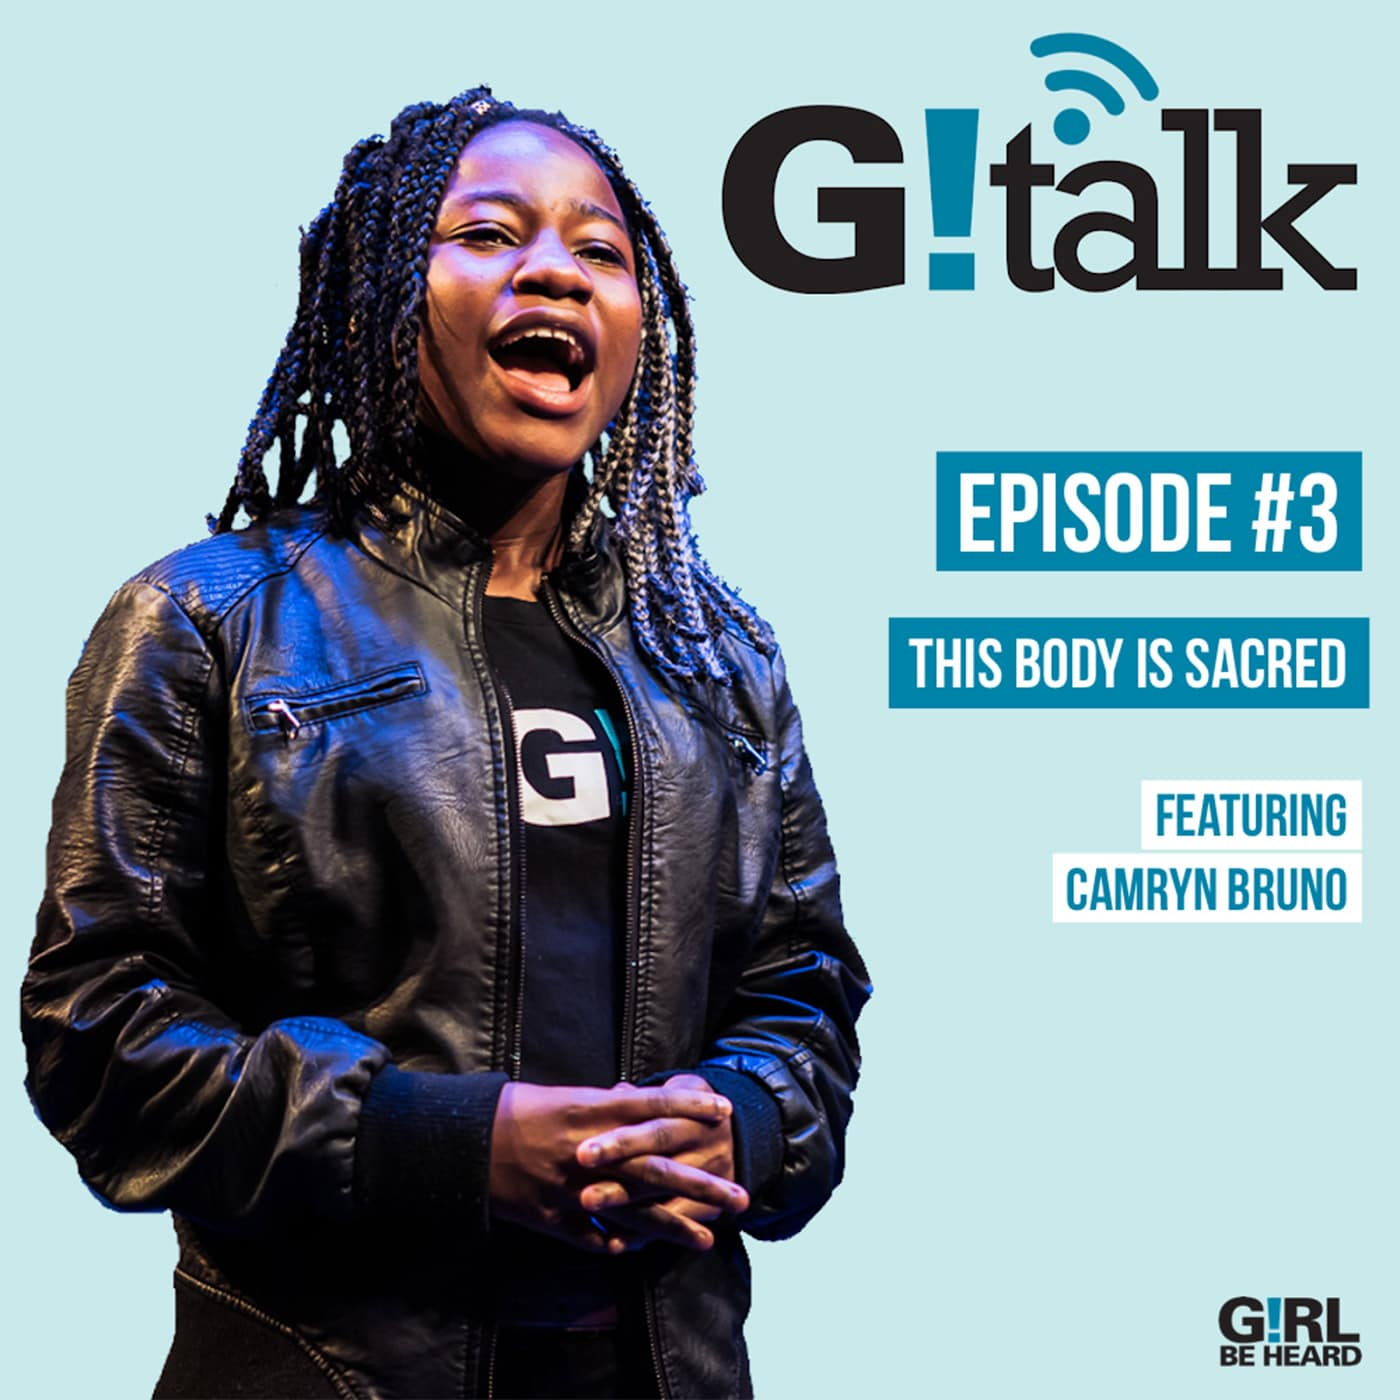 GIRL BE HEARD G!TALK Episode 3 The Body Is Sacred